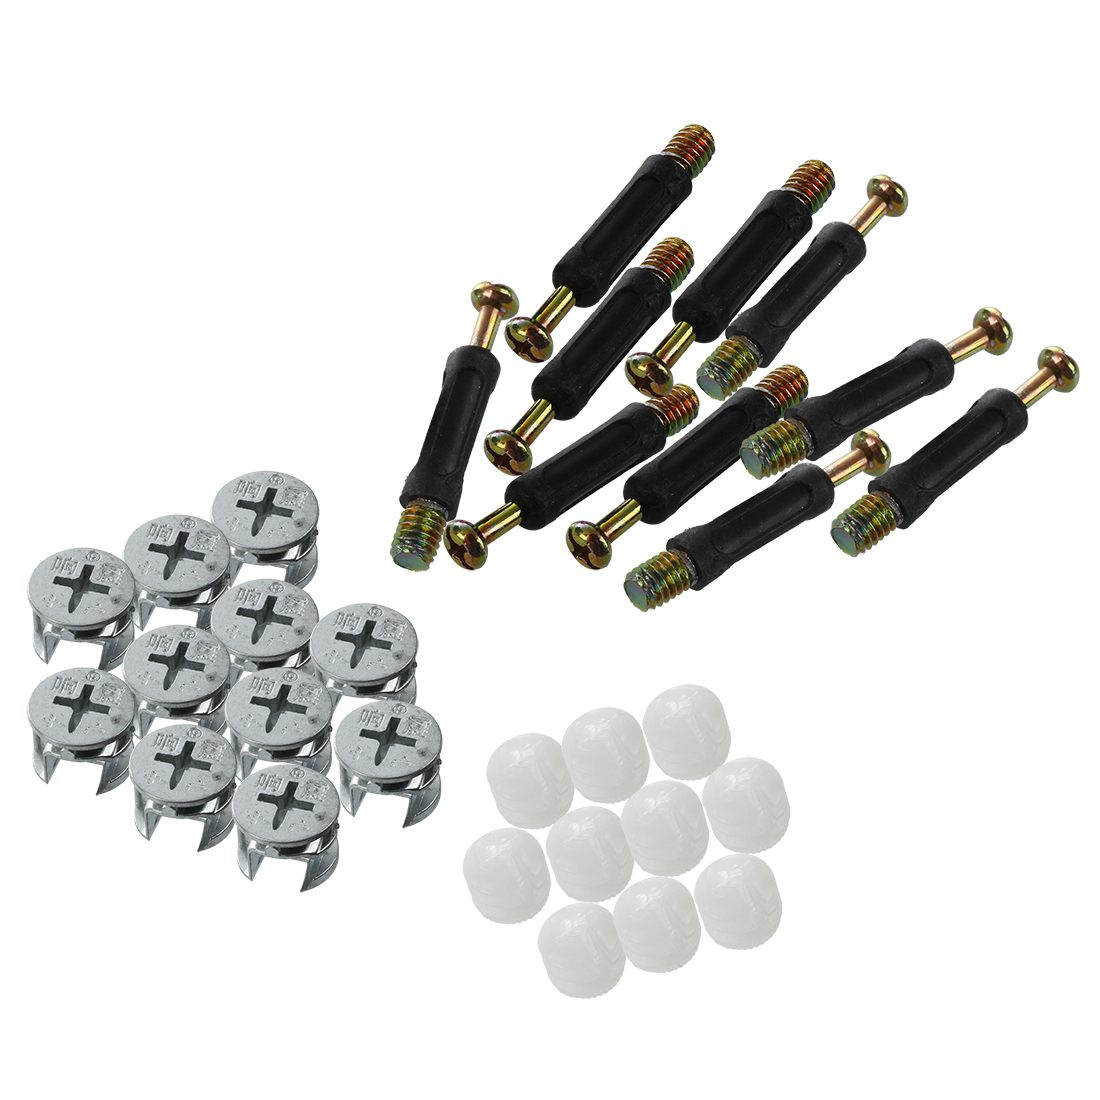 DSHA New Hot 10 Sets Furniture Side Connecting 15 X 12mm Cam Fitting Dowel Pre-inserted Nut